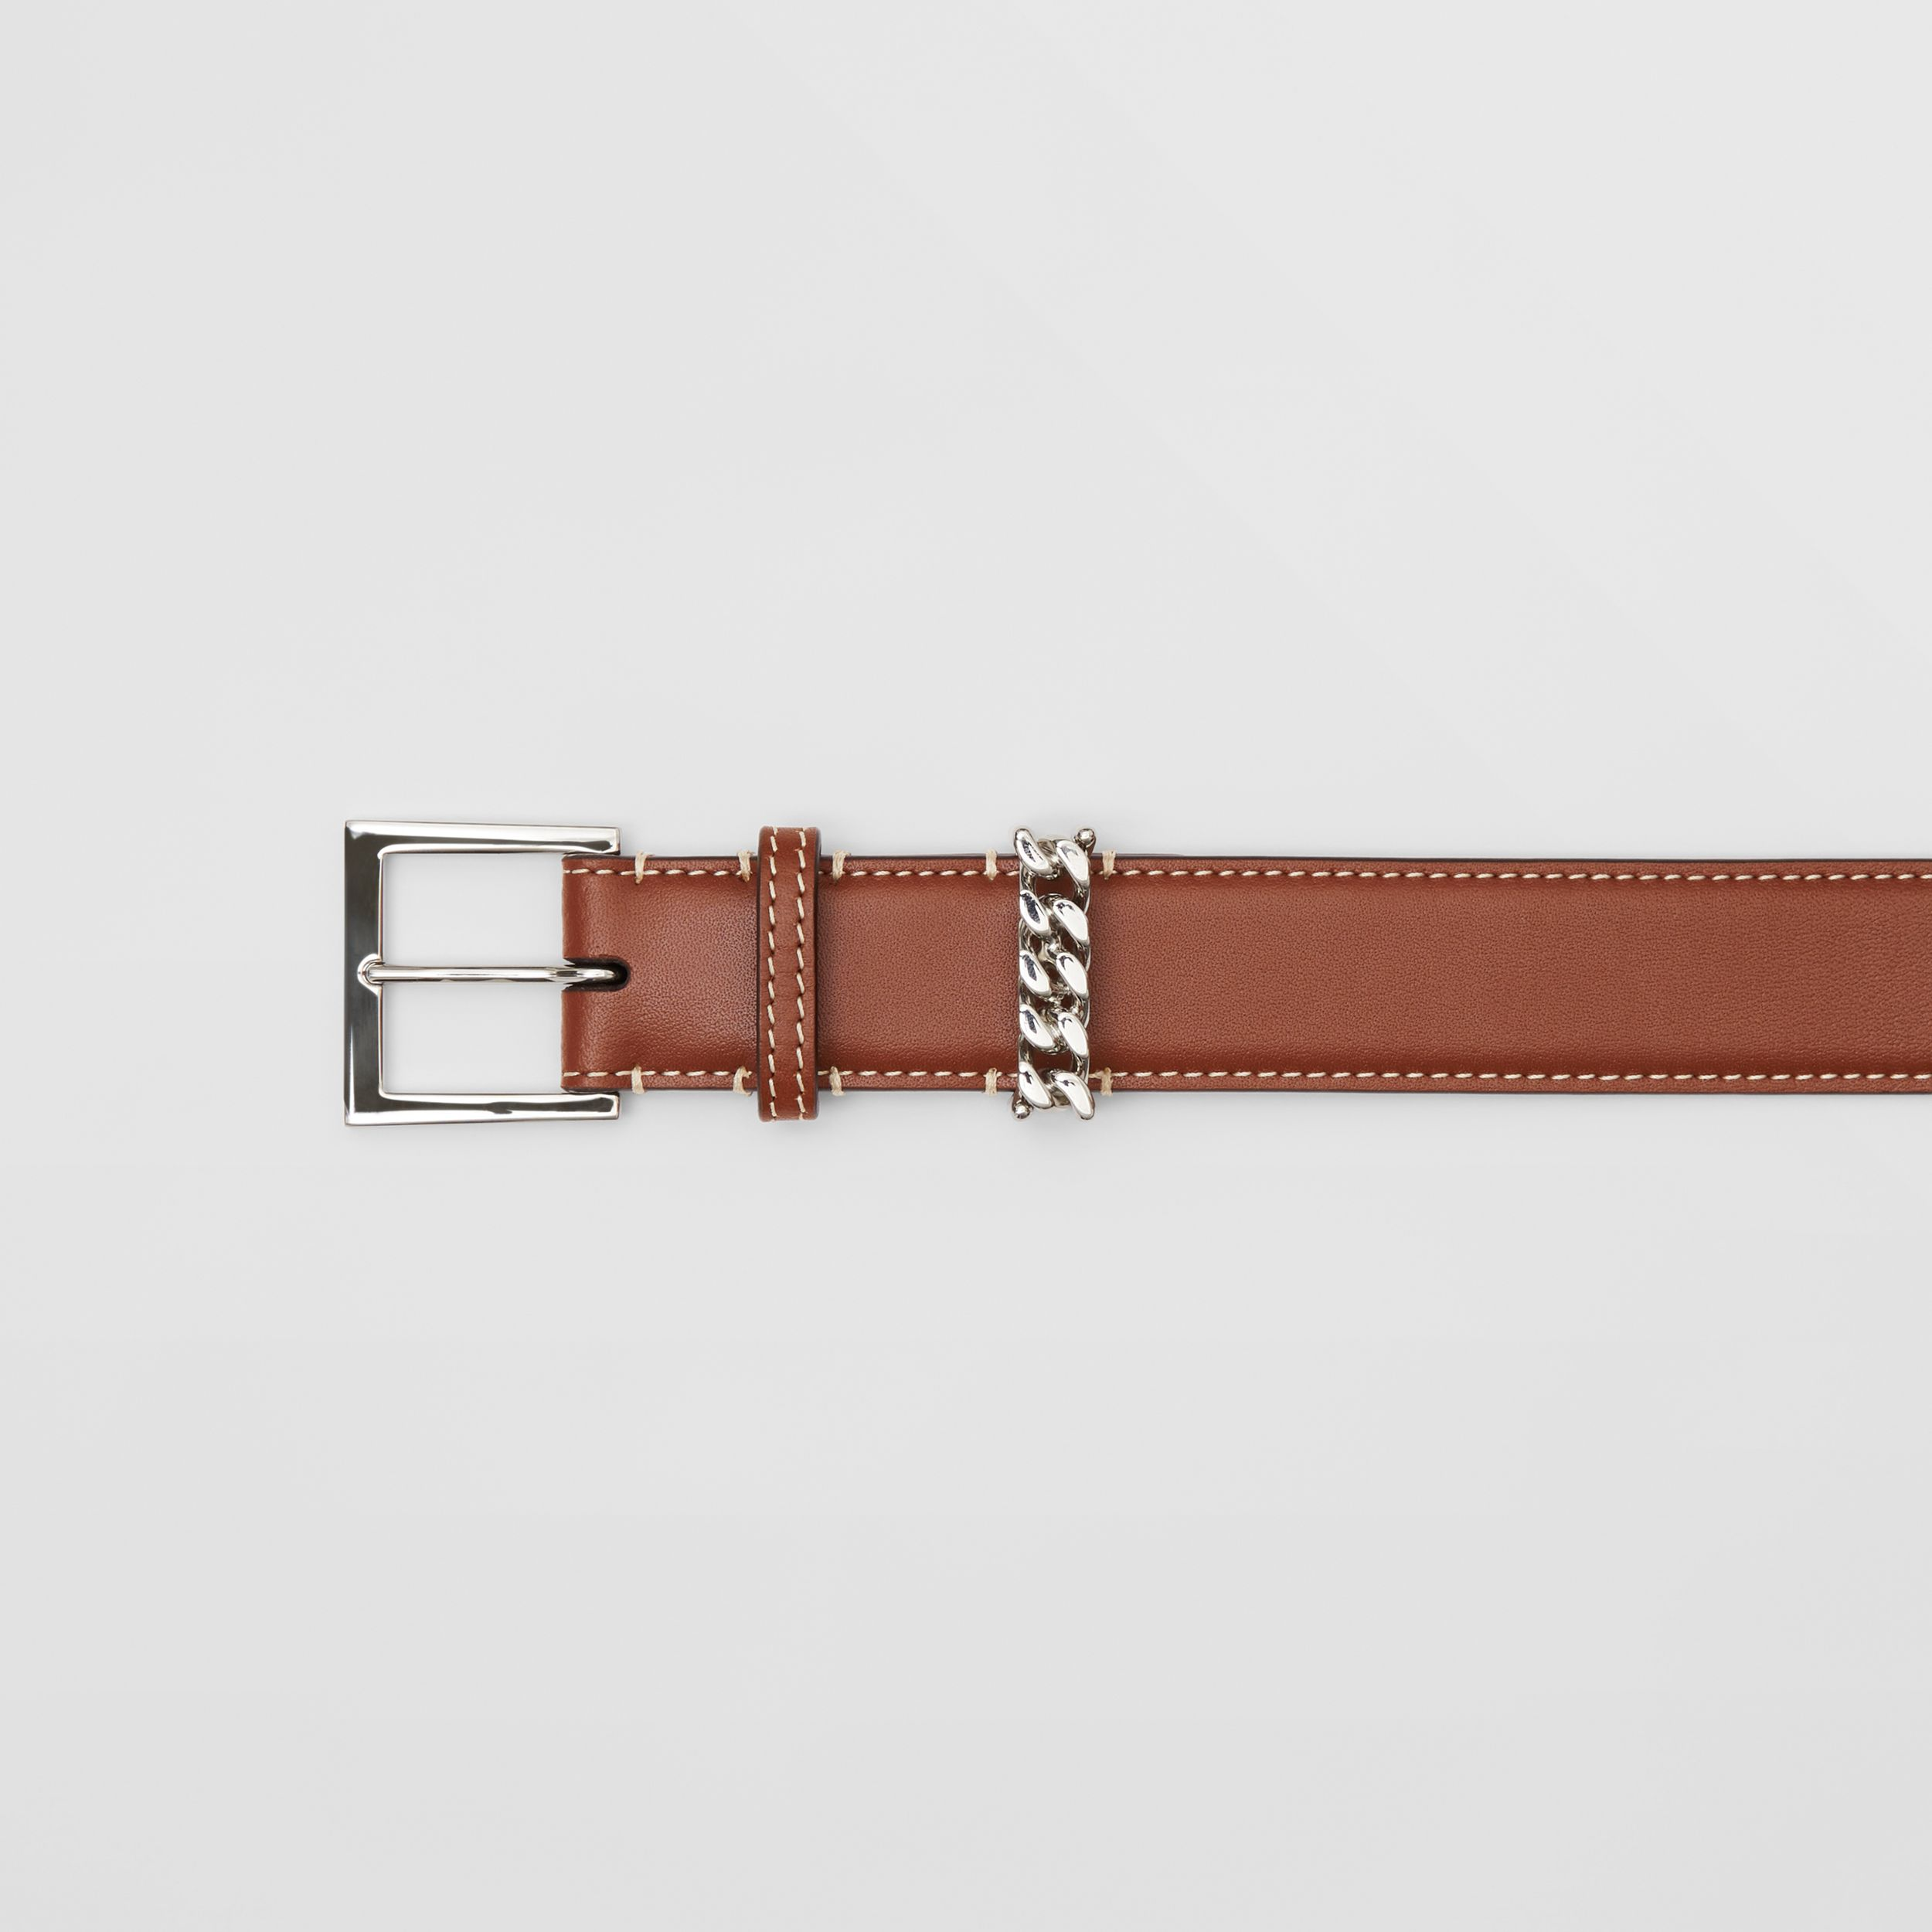 Chain Detail Topstitched Leather Belt in Tan/ecru - Women | Burberry Hong Kong S.A.R. - 2